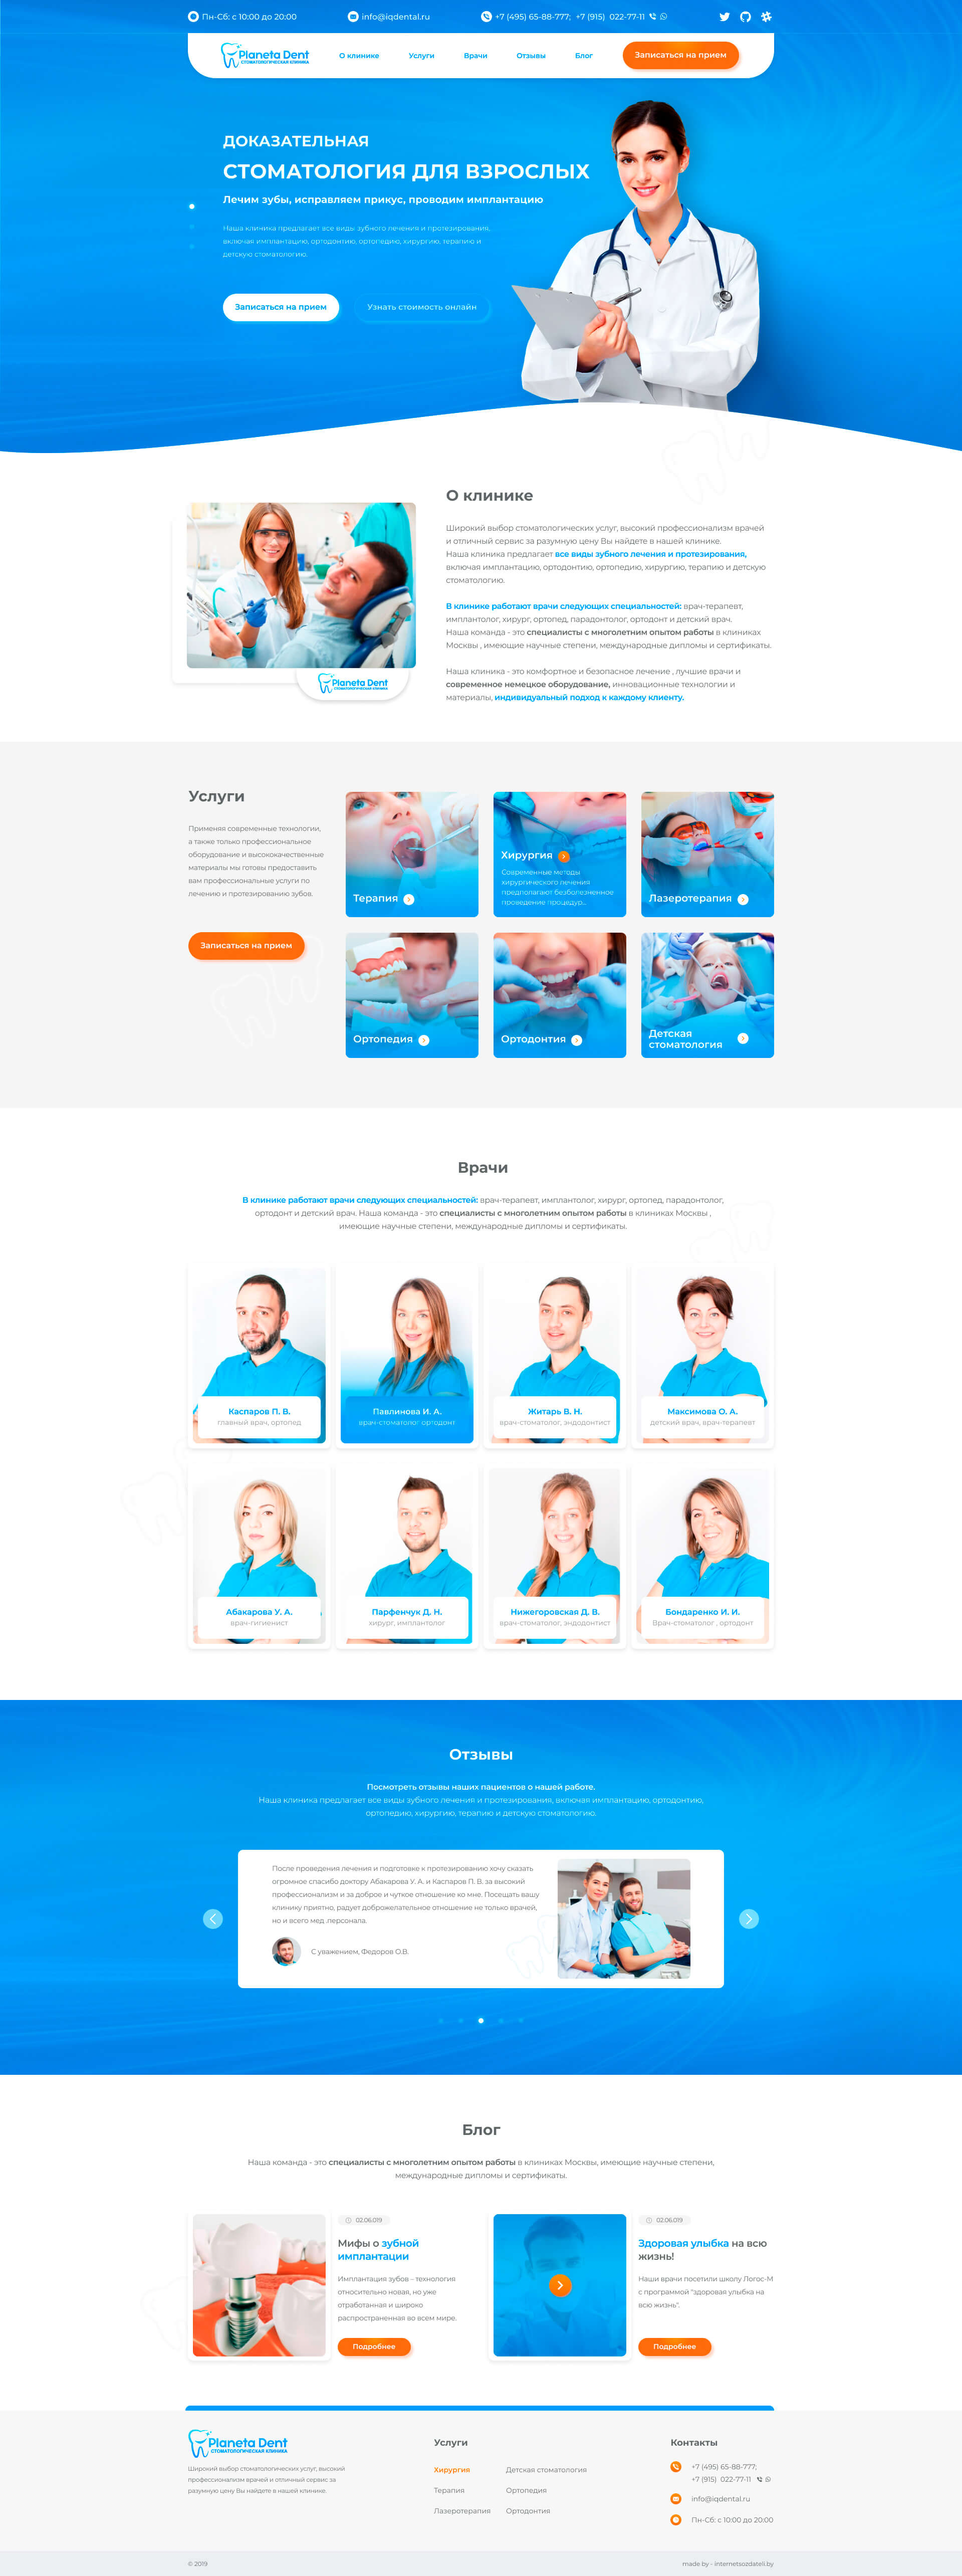 Website development landing page for dental services